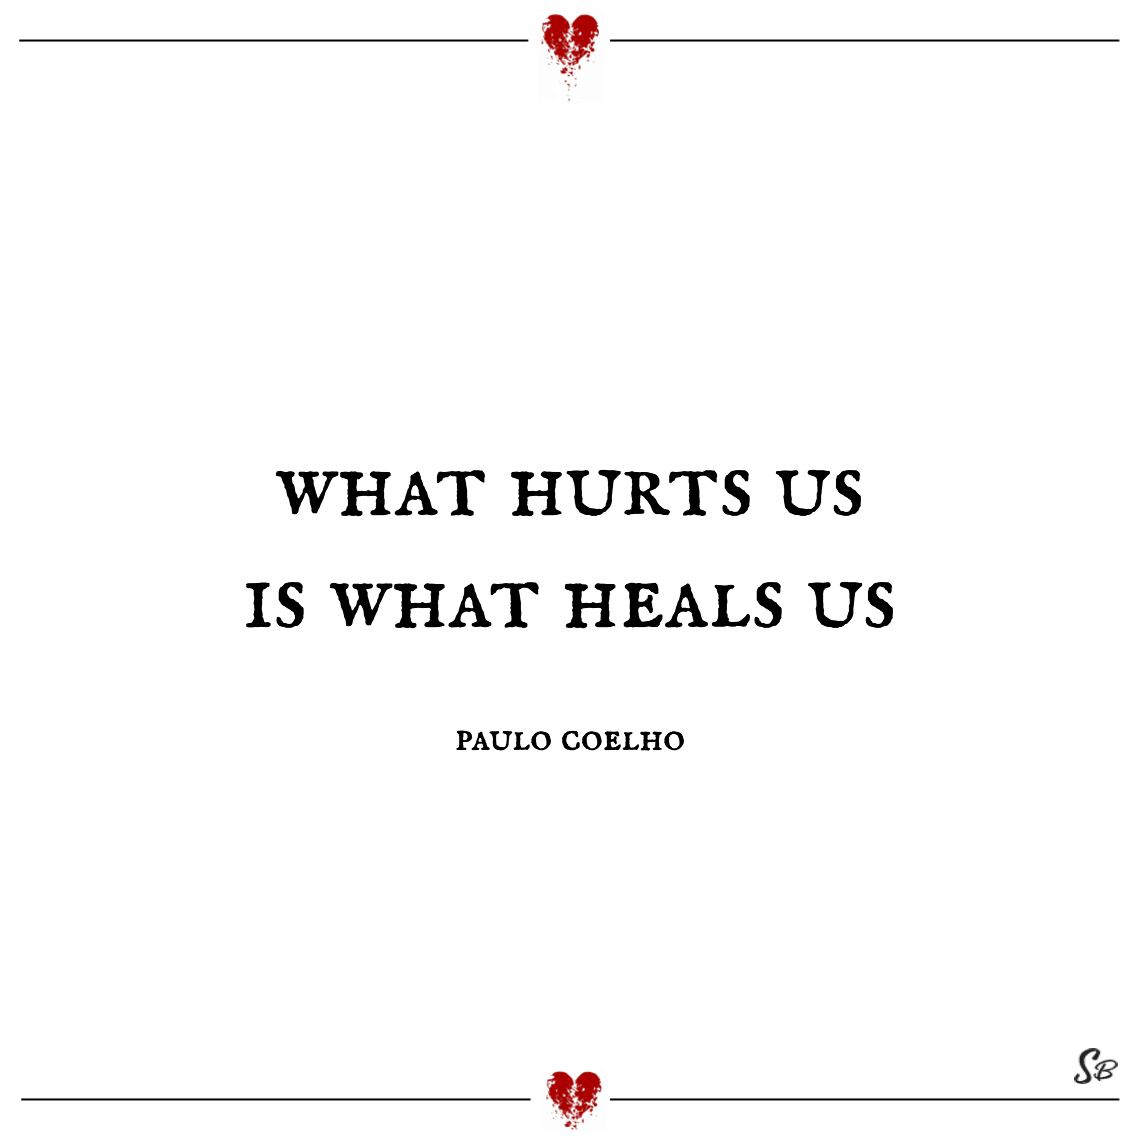 What hurts us is what heals us paulo coelho feeling hurt pain quotes